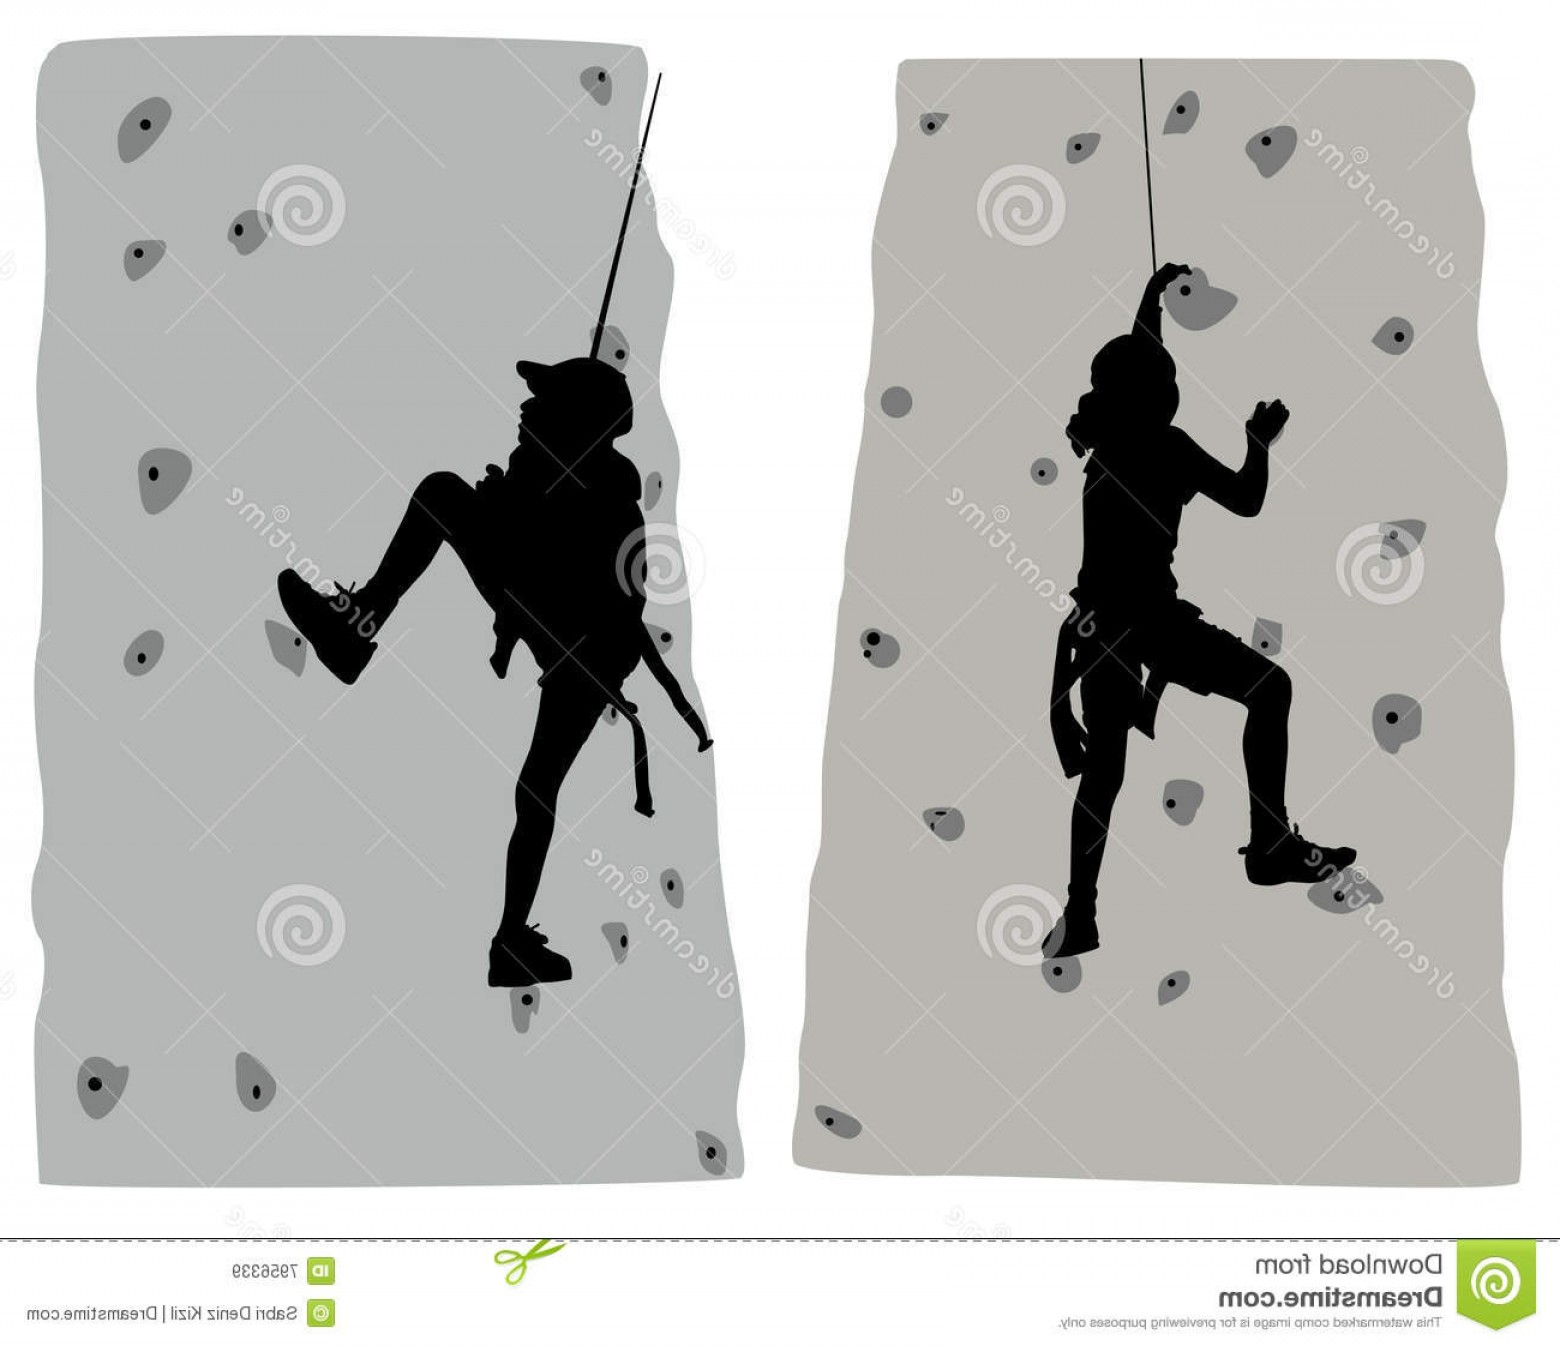 Climbing Silhouette Vector Art: Royalty Free Stock Images Climber Vector Image